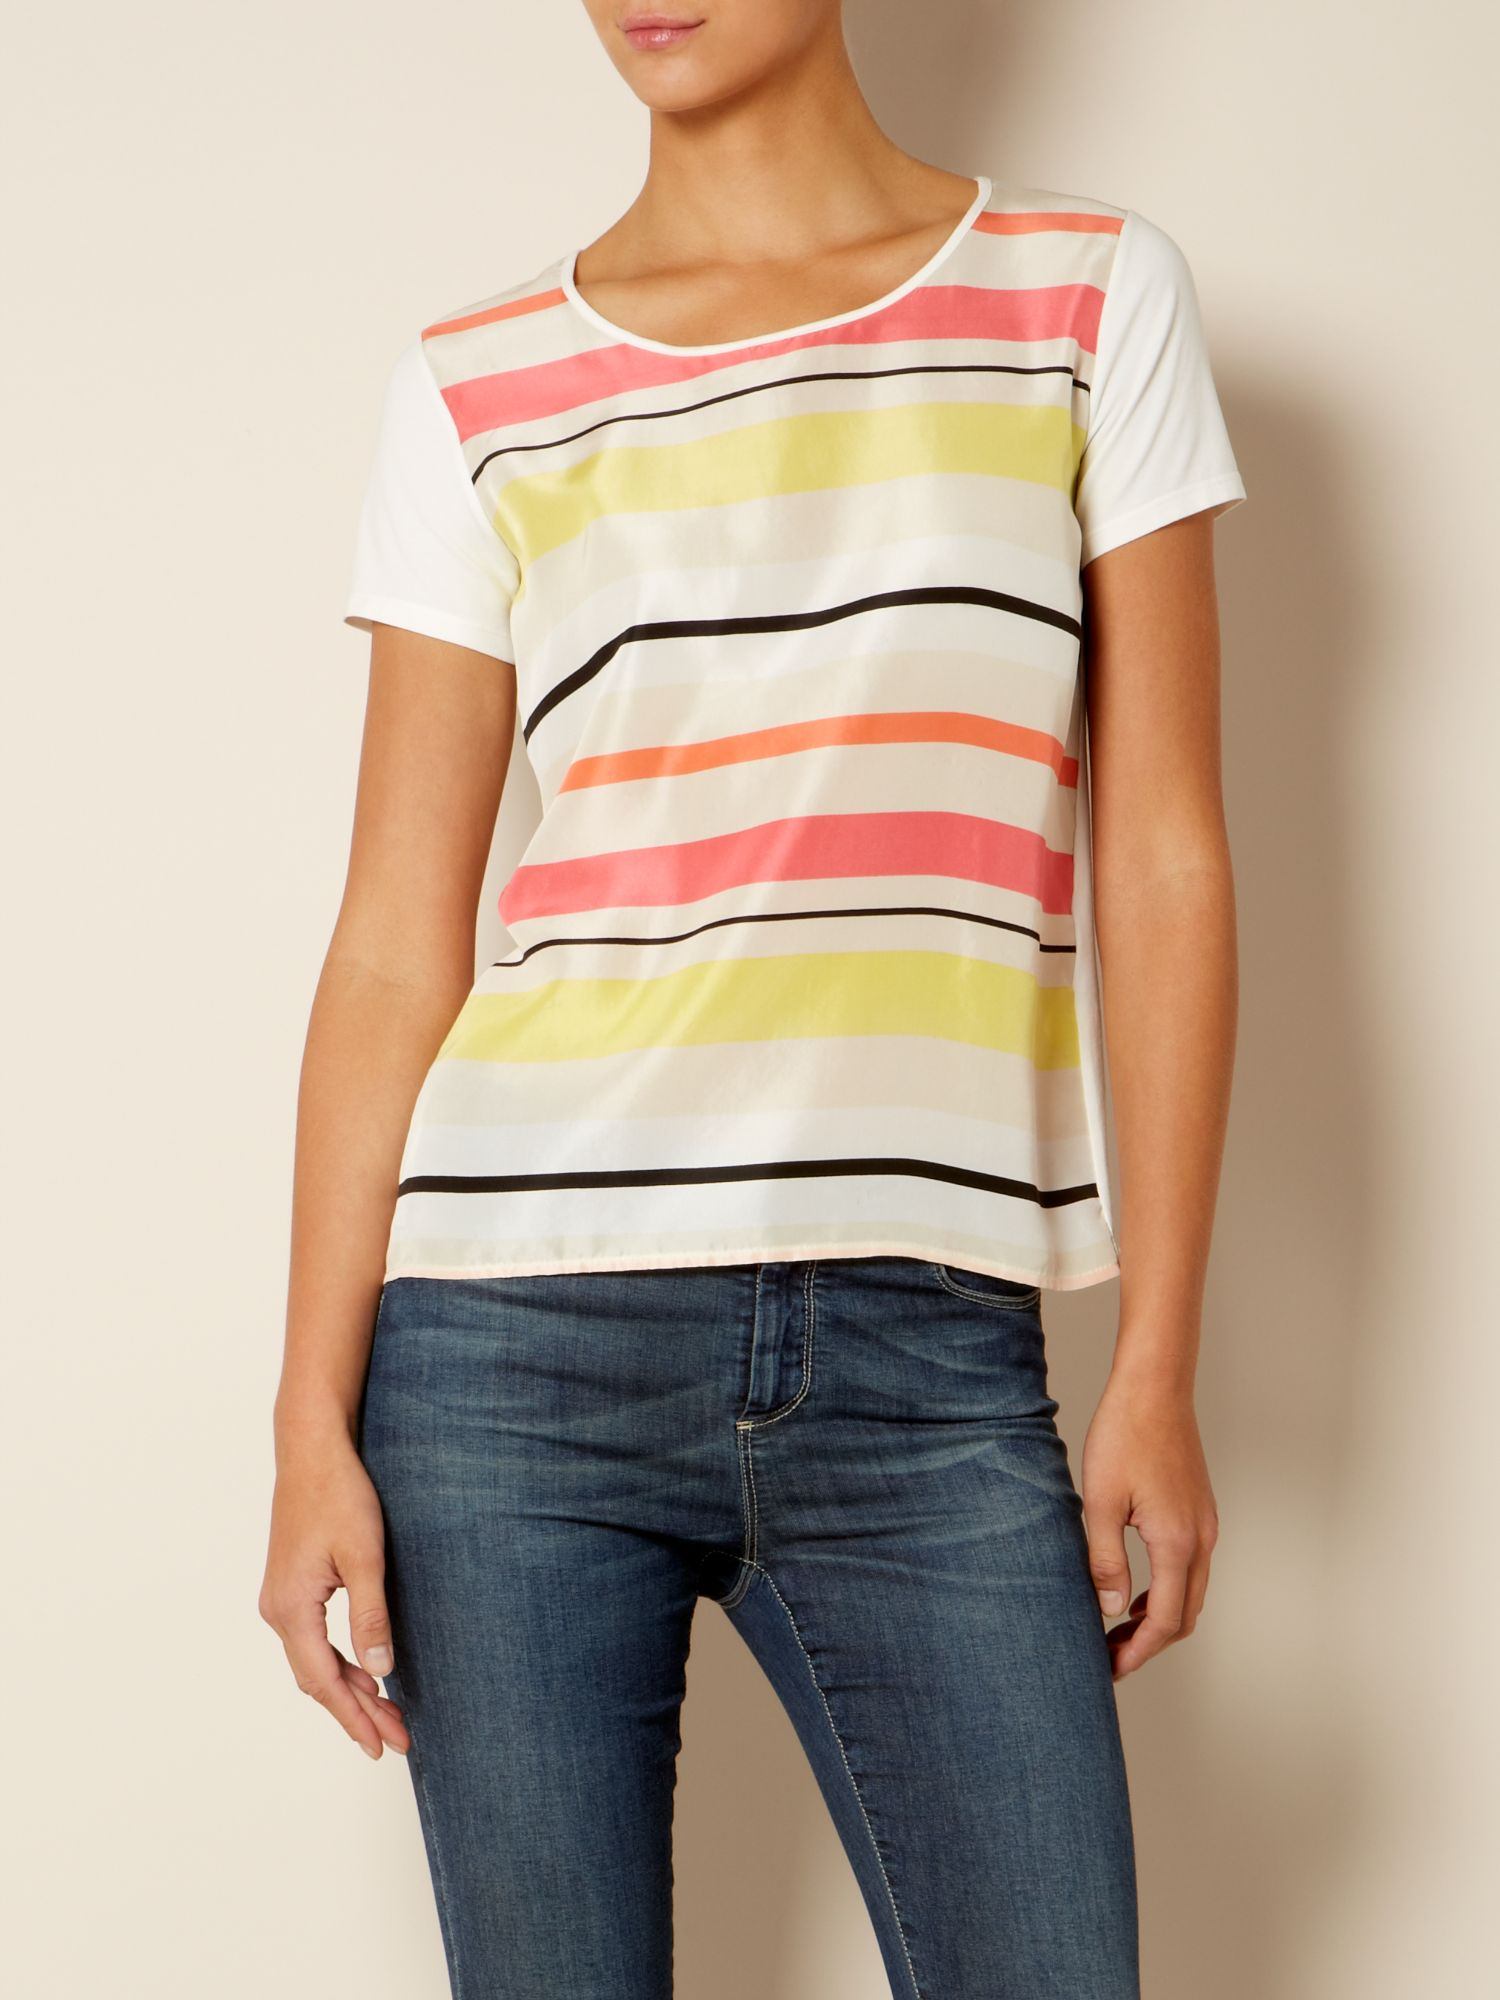 Fama striped t-shirt with floral detail